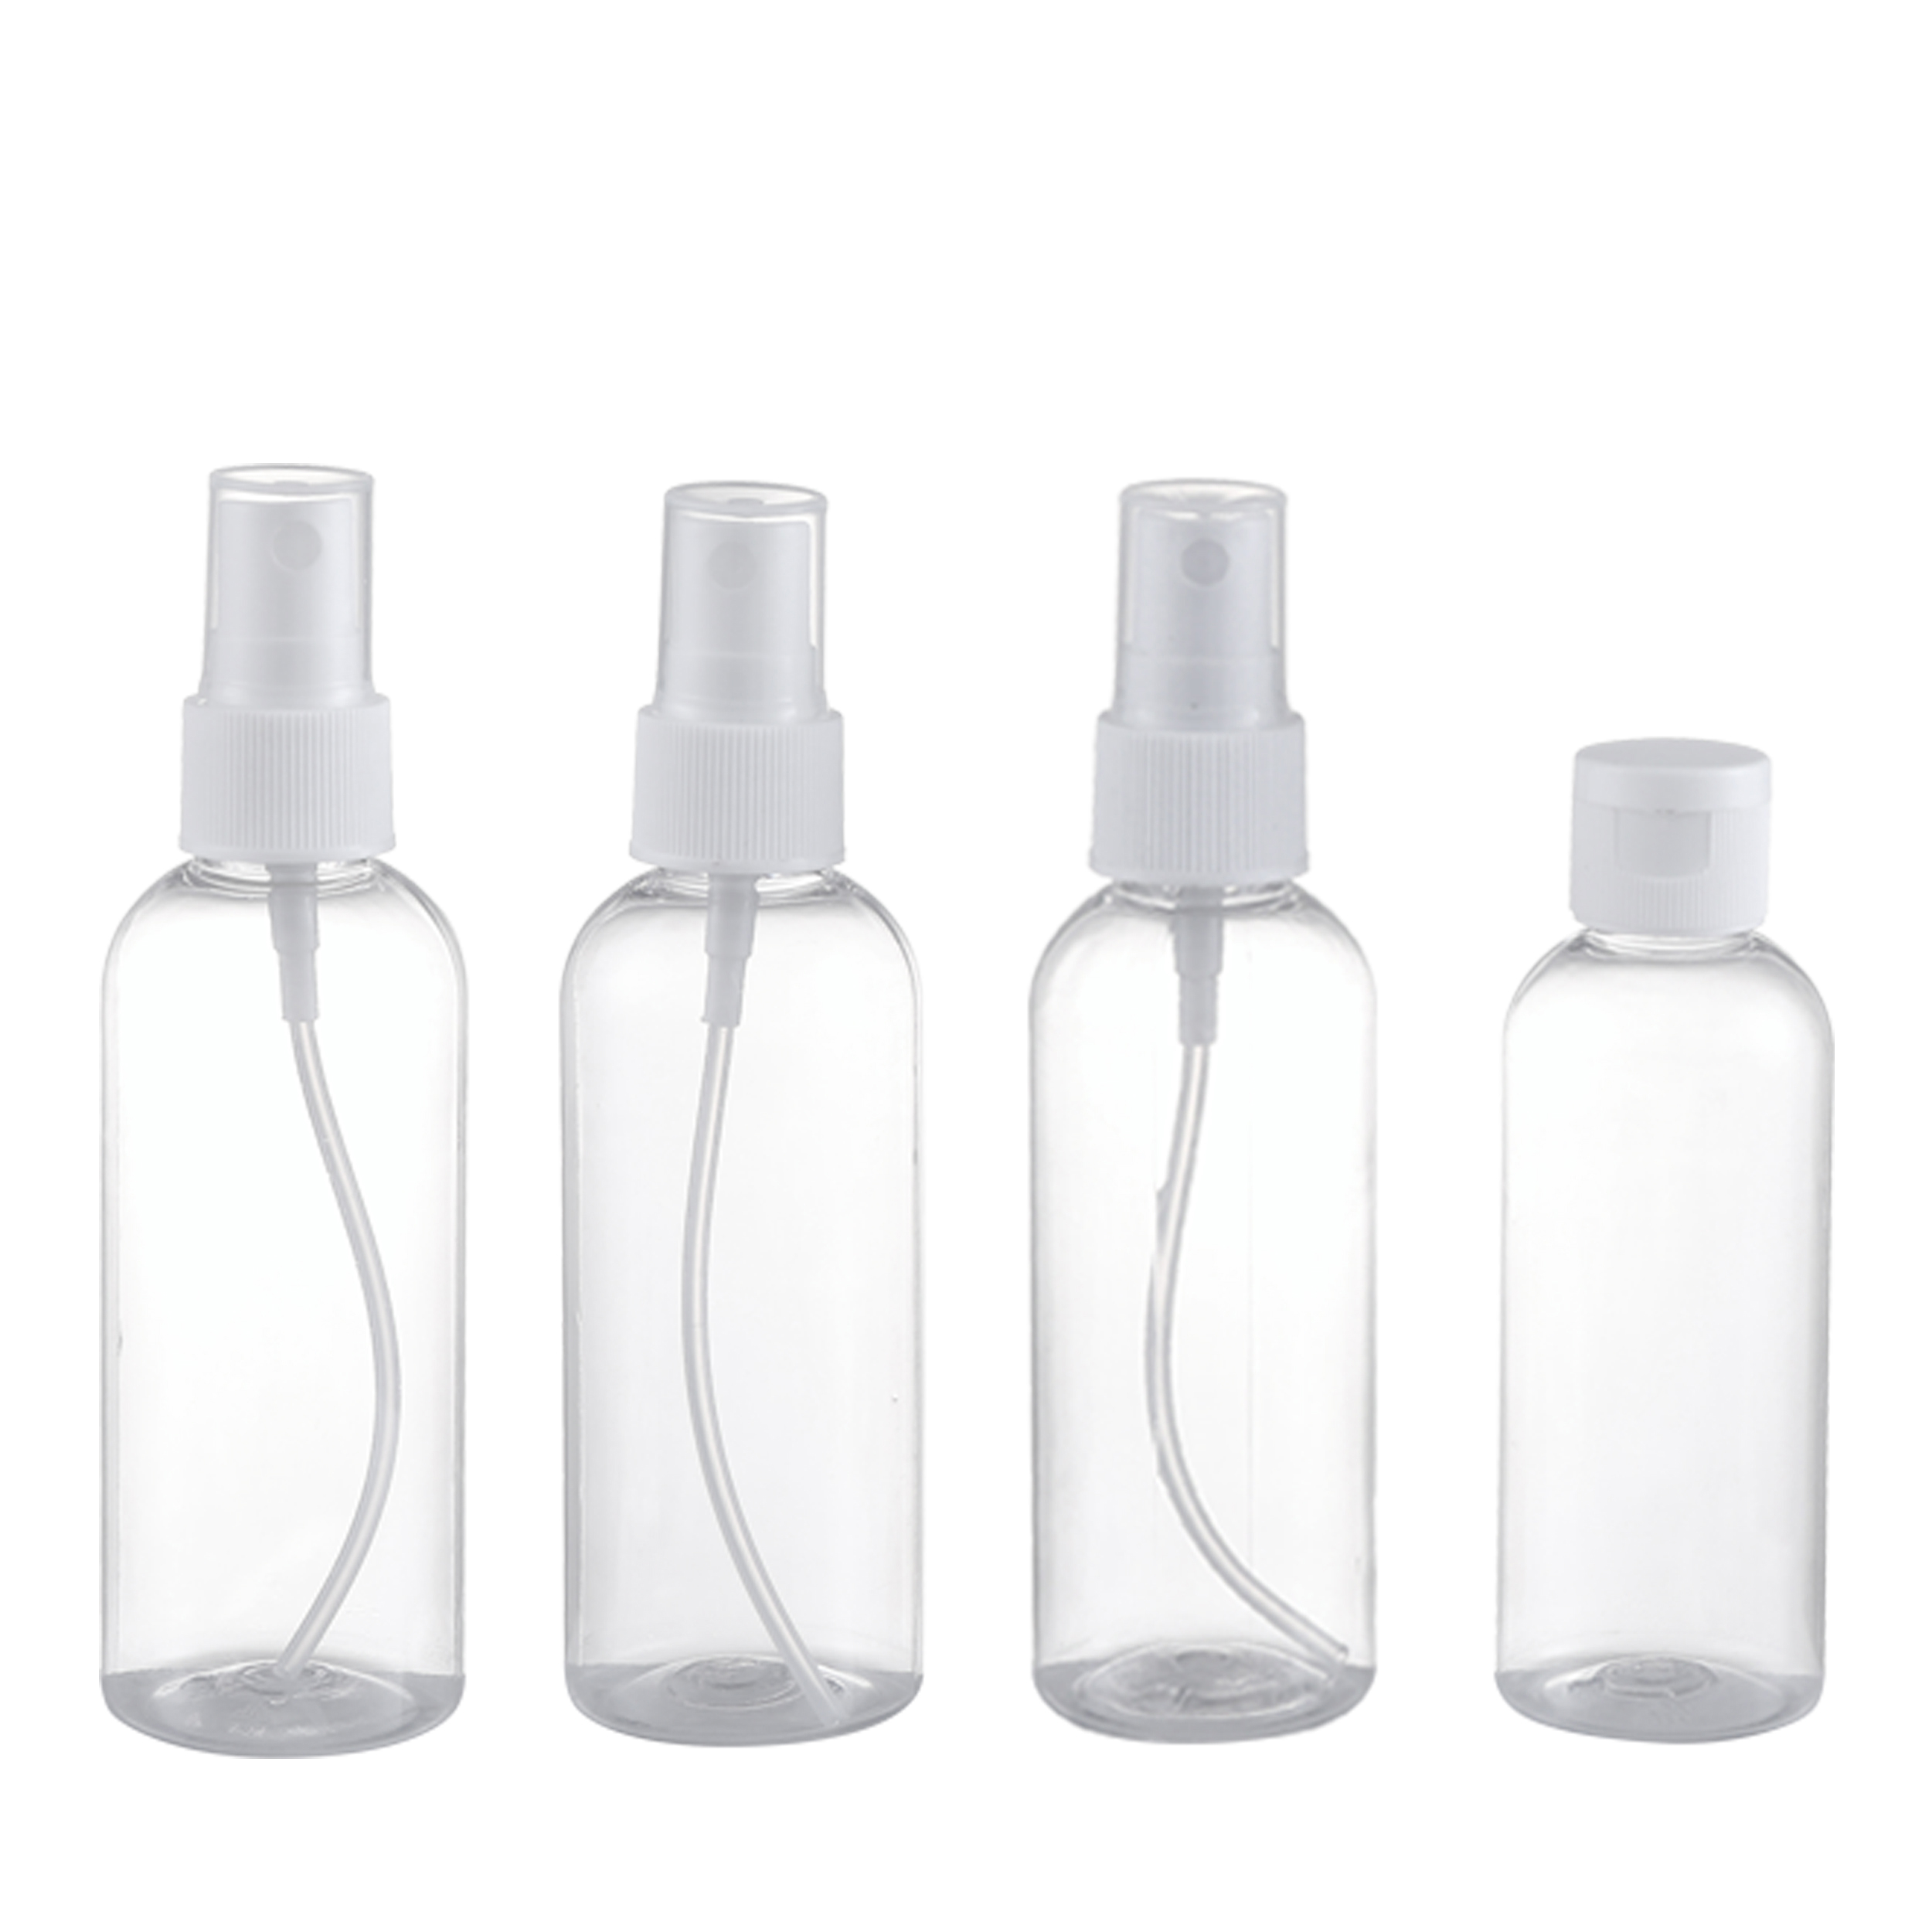 4Pcs travel pet bottle kit with bag